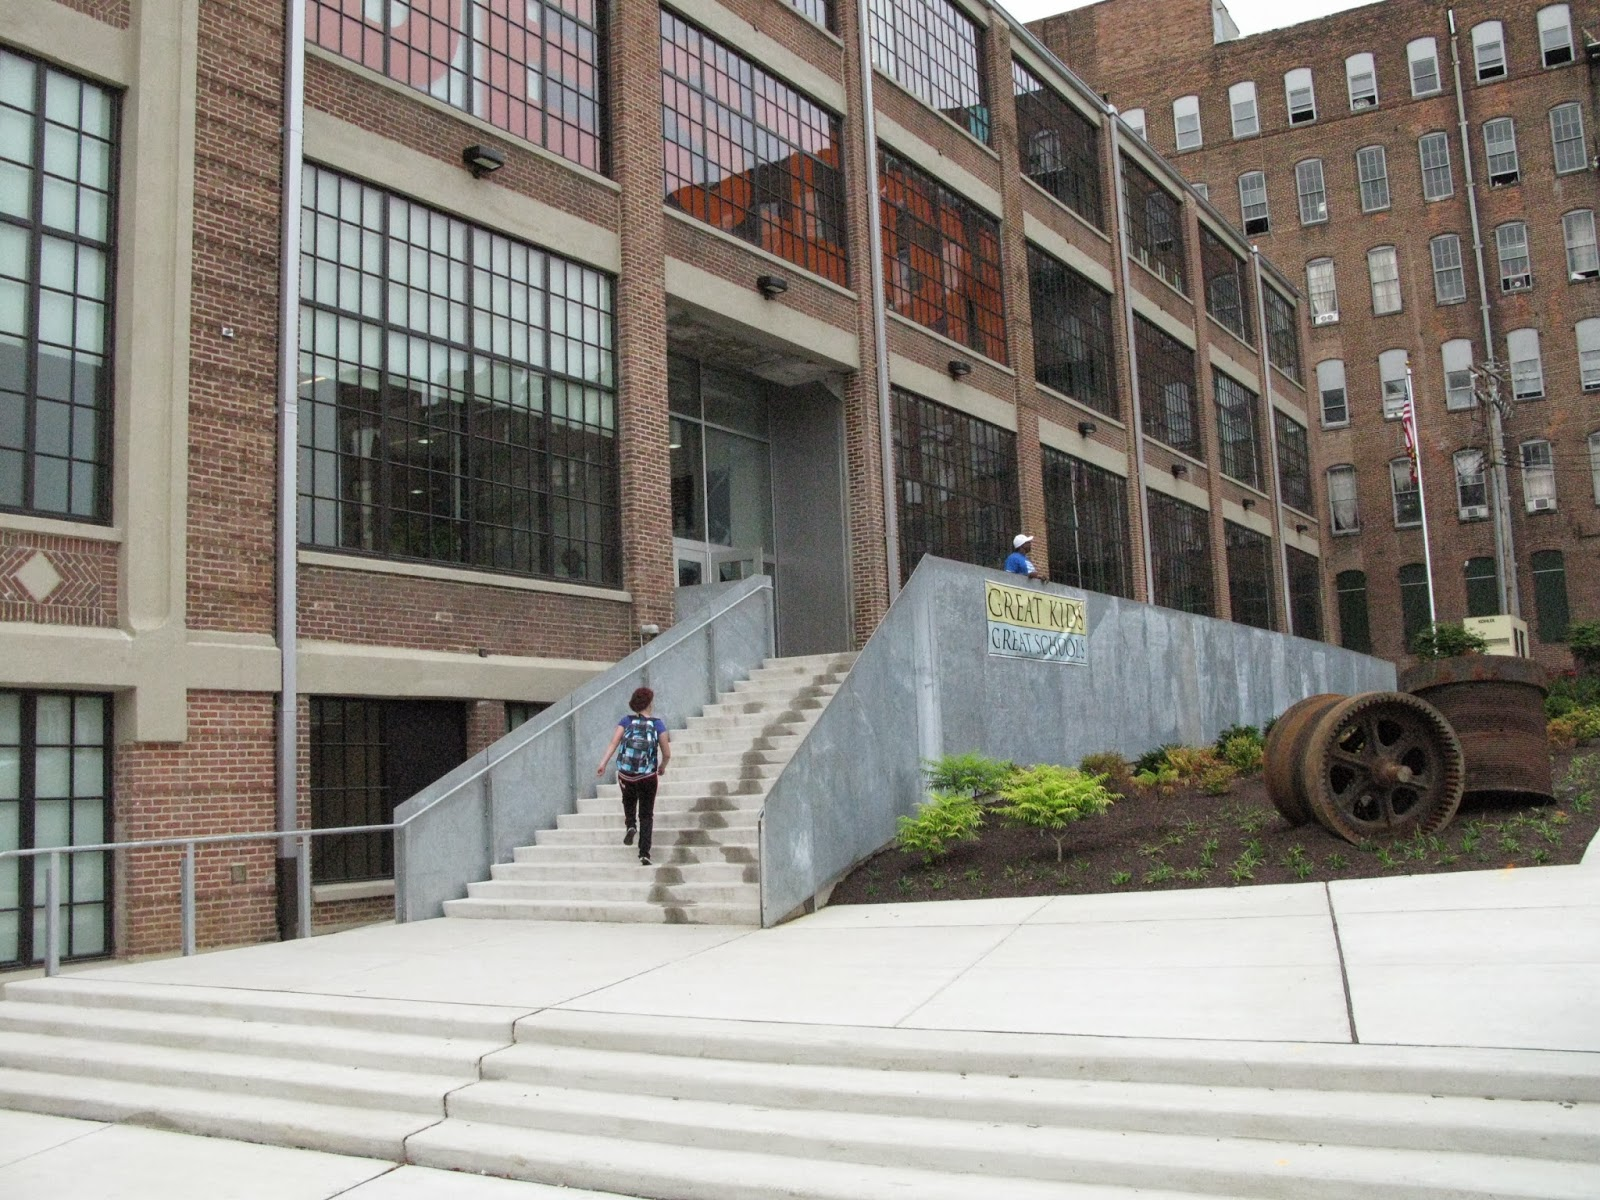 Even Outside Stairs Make A Reappearance As Long An Equally Direct Accessible Route Leads To The Same Entrance Design School Baltimore Architect Ziger